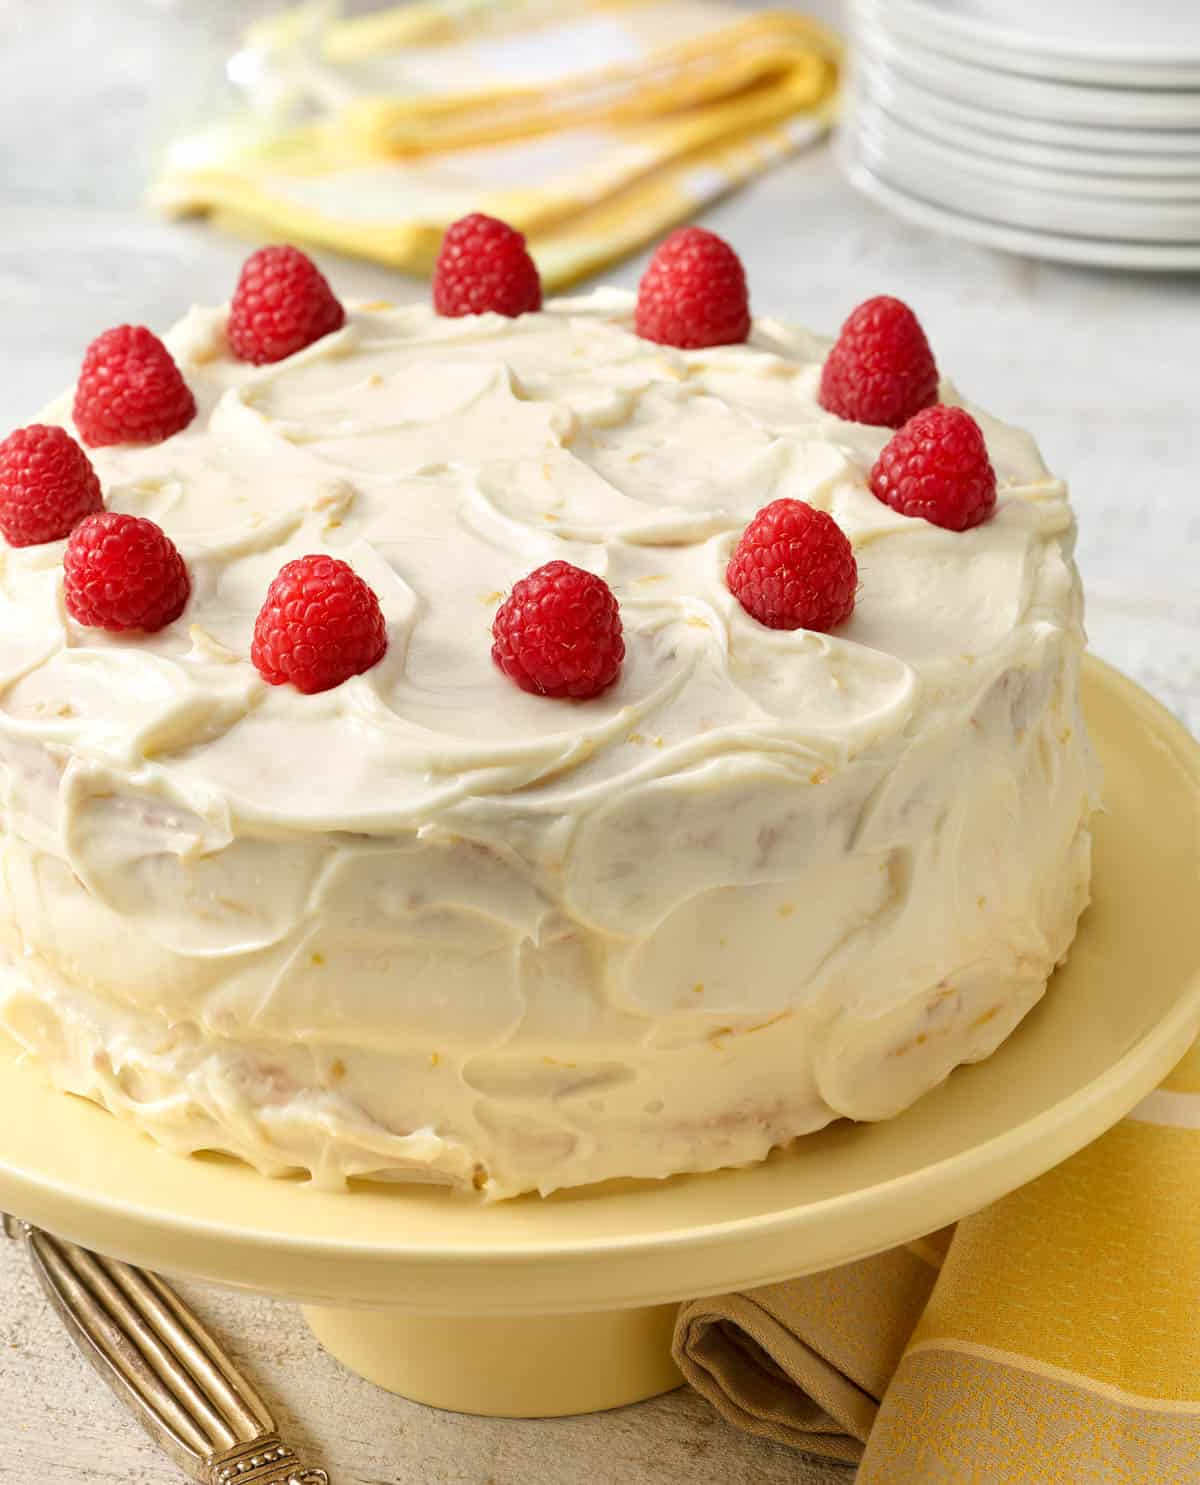 Banana Raspberry Cake with Lemon Frosting on a cake stand